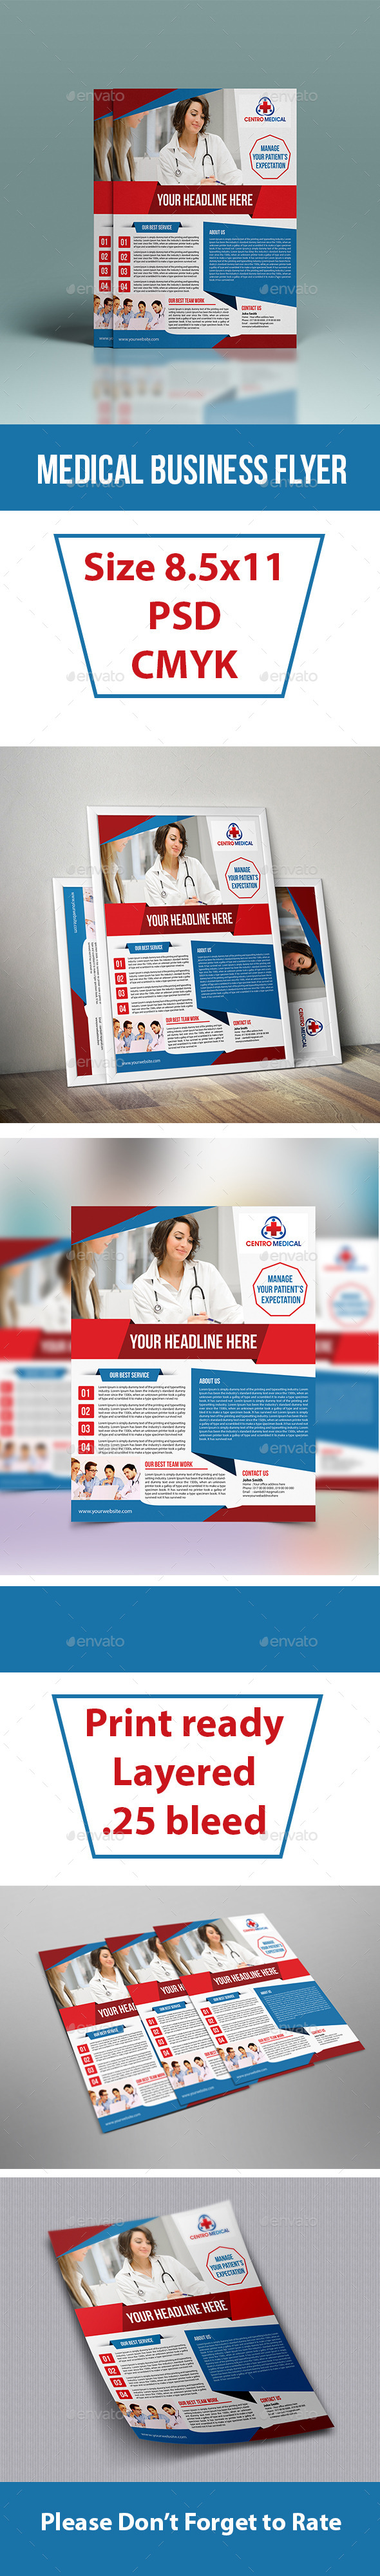 Medical Business Flyer